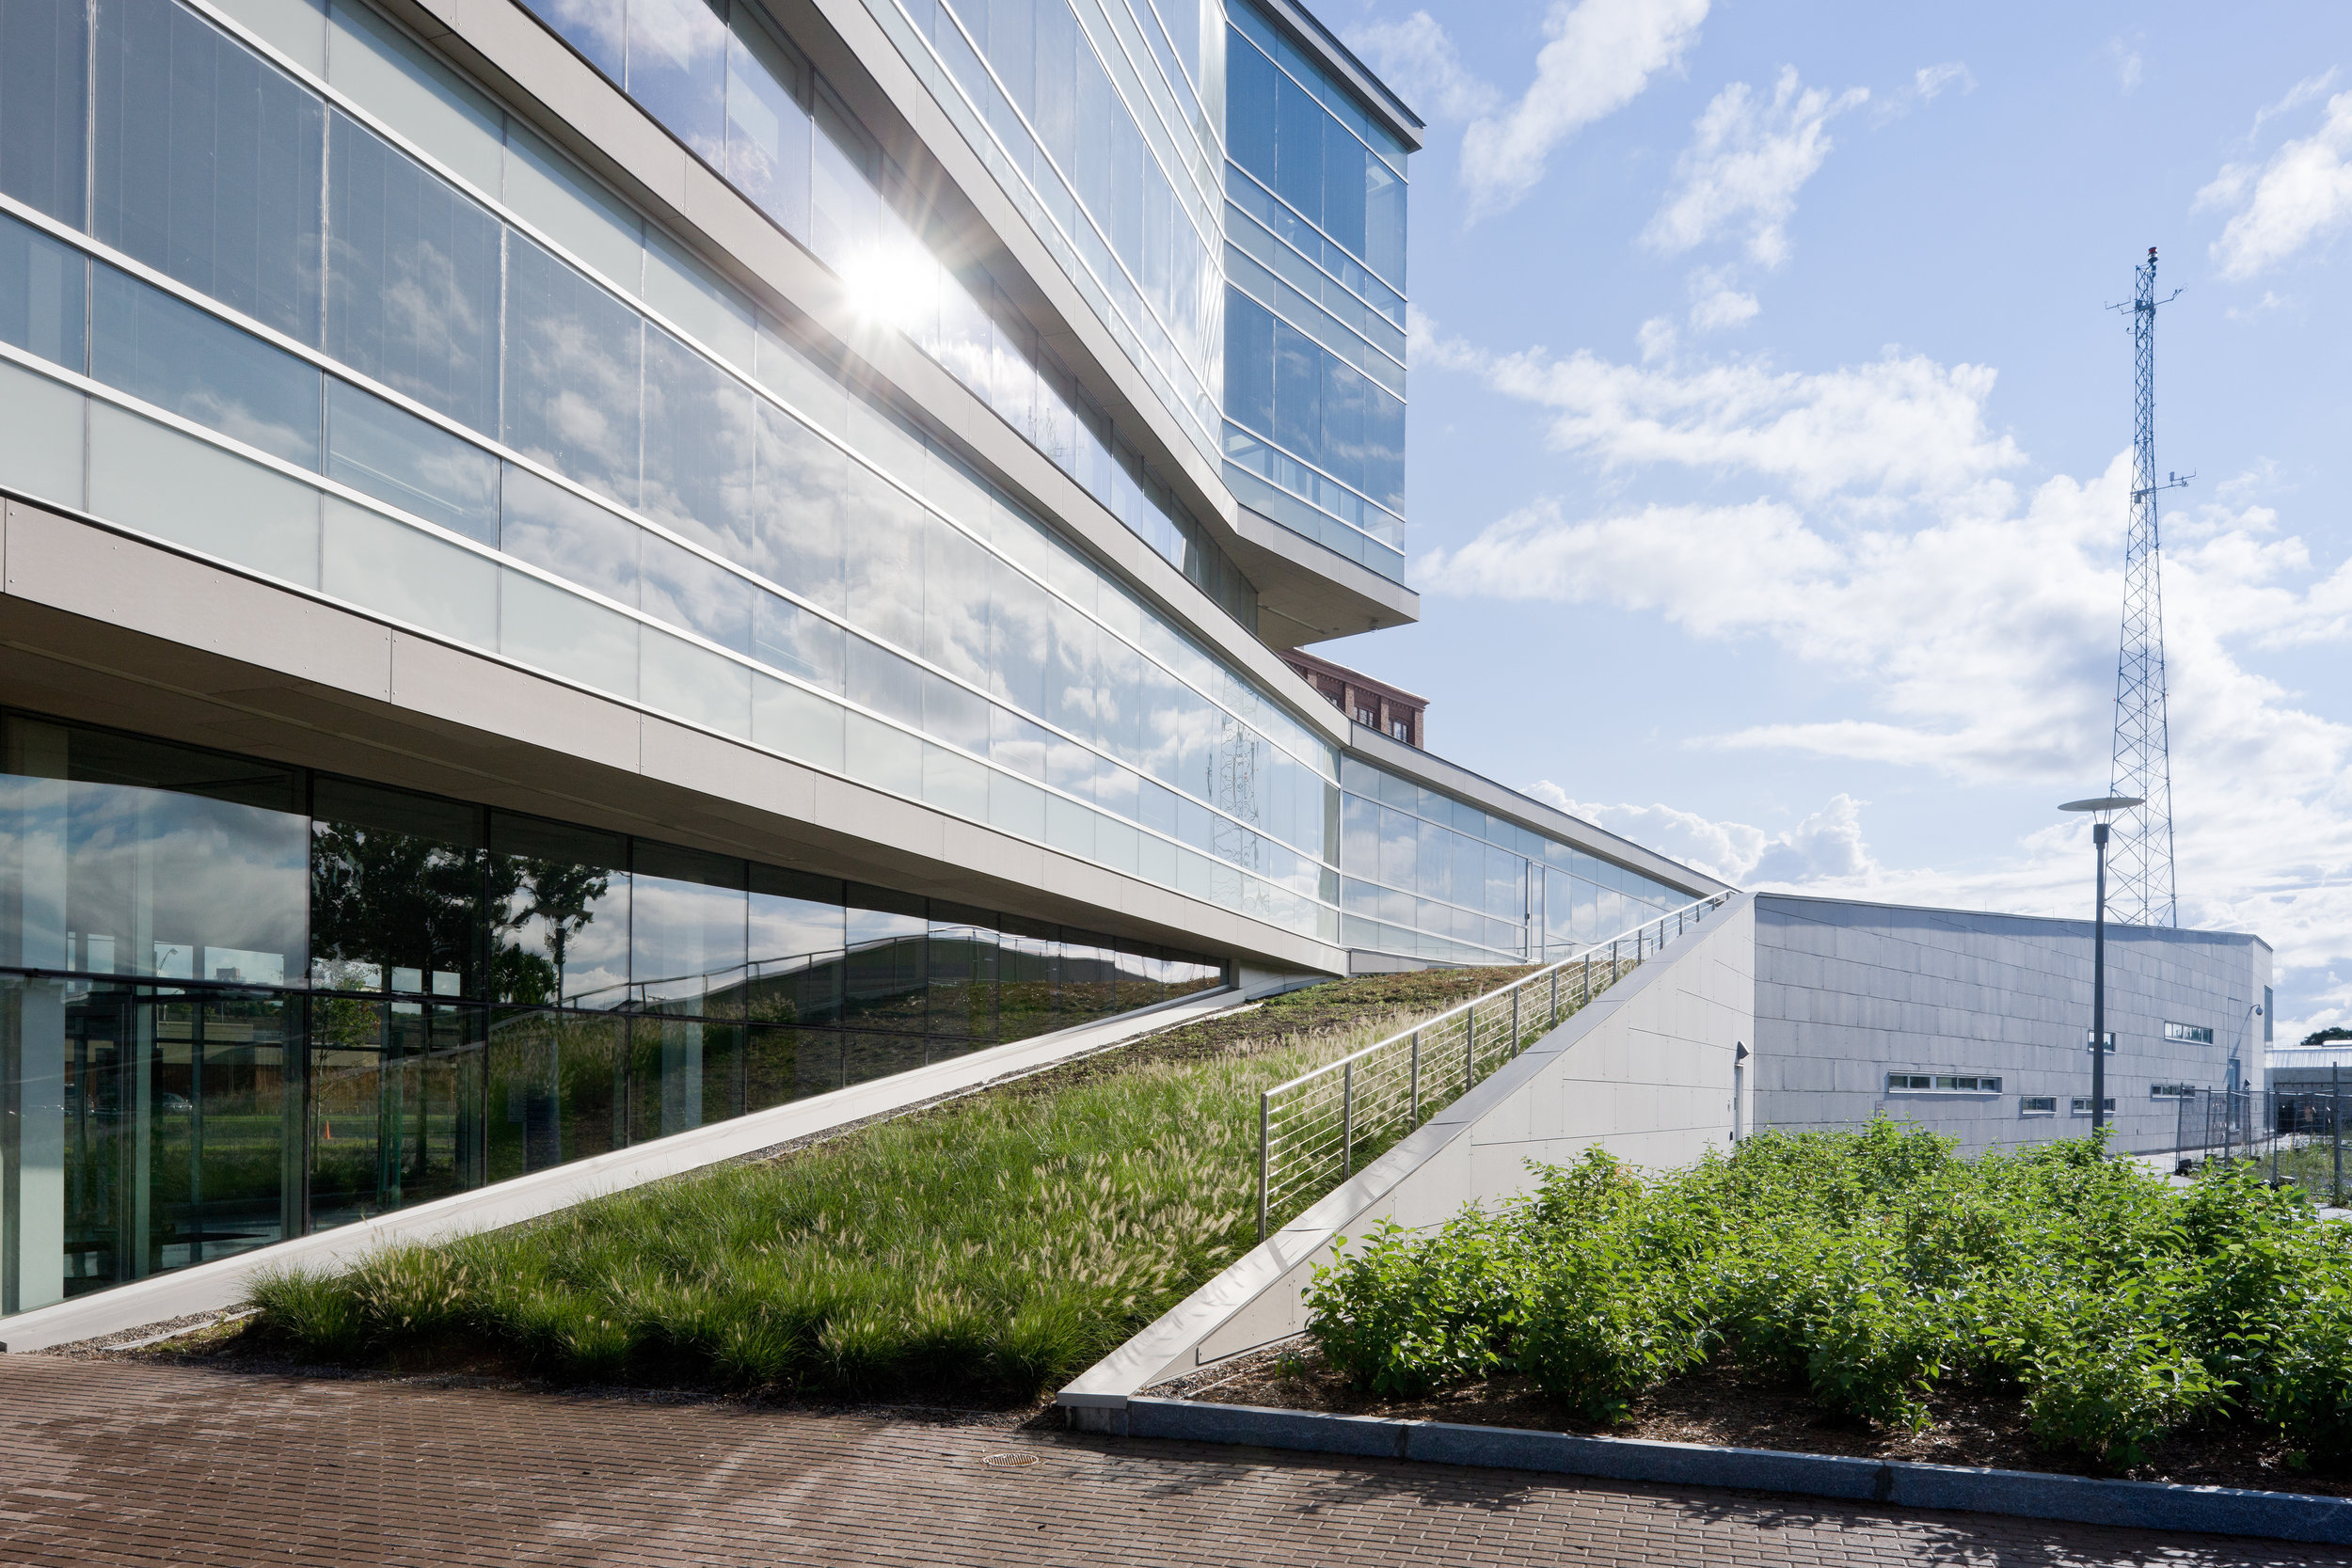 SYRACUSE CENTER OF EXCELLENCE - Project Honor Award, American Institute of Architects, New York City Chapter